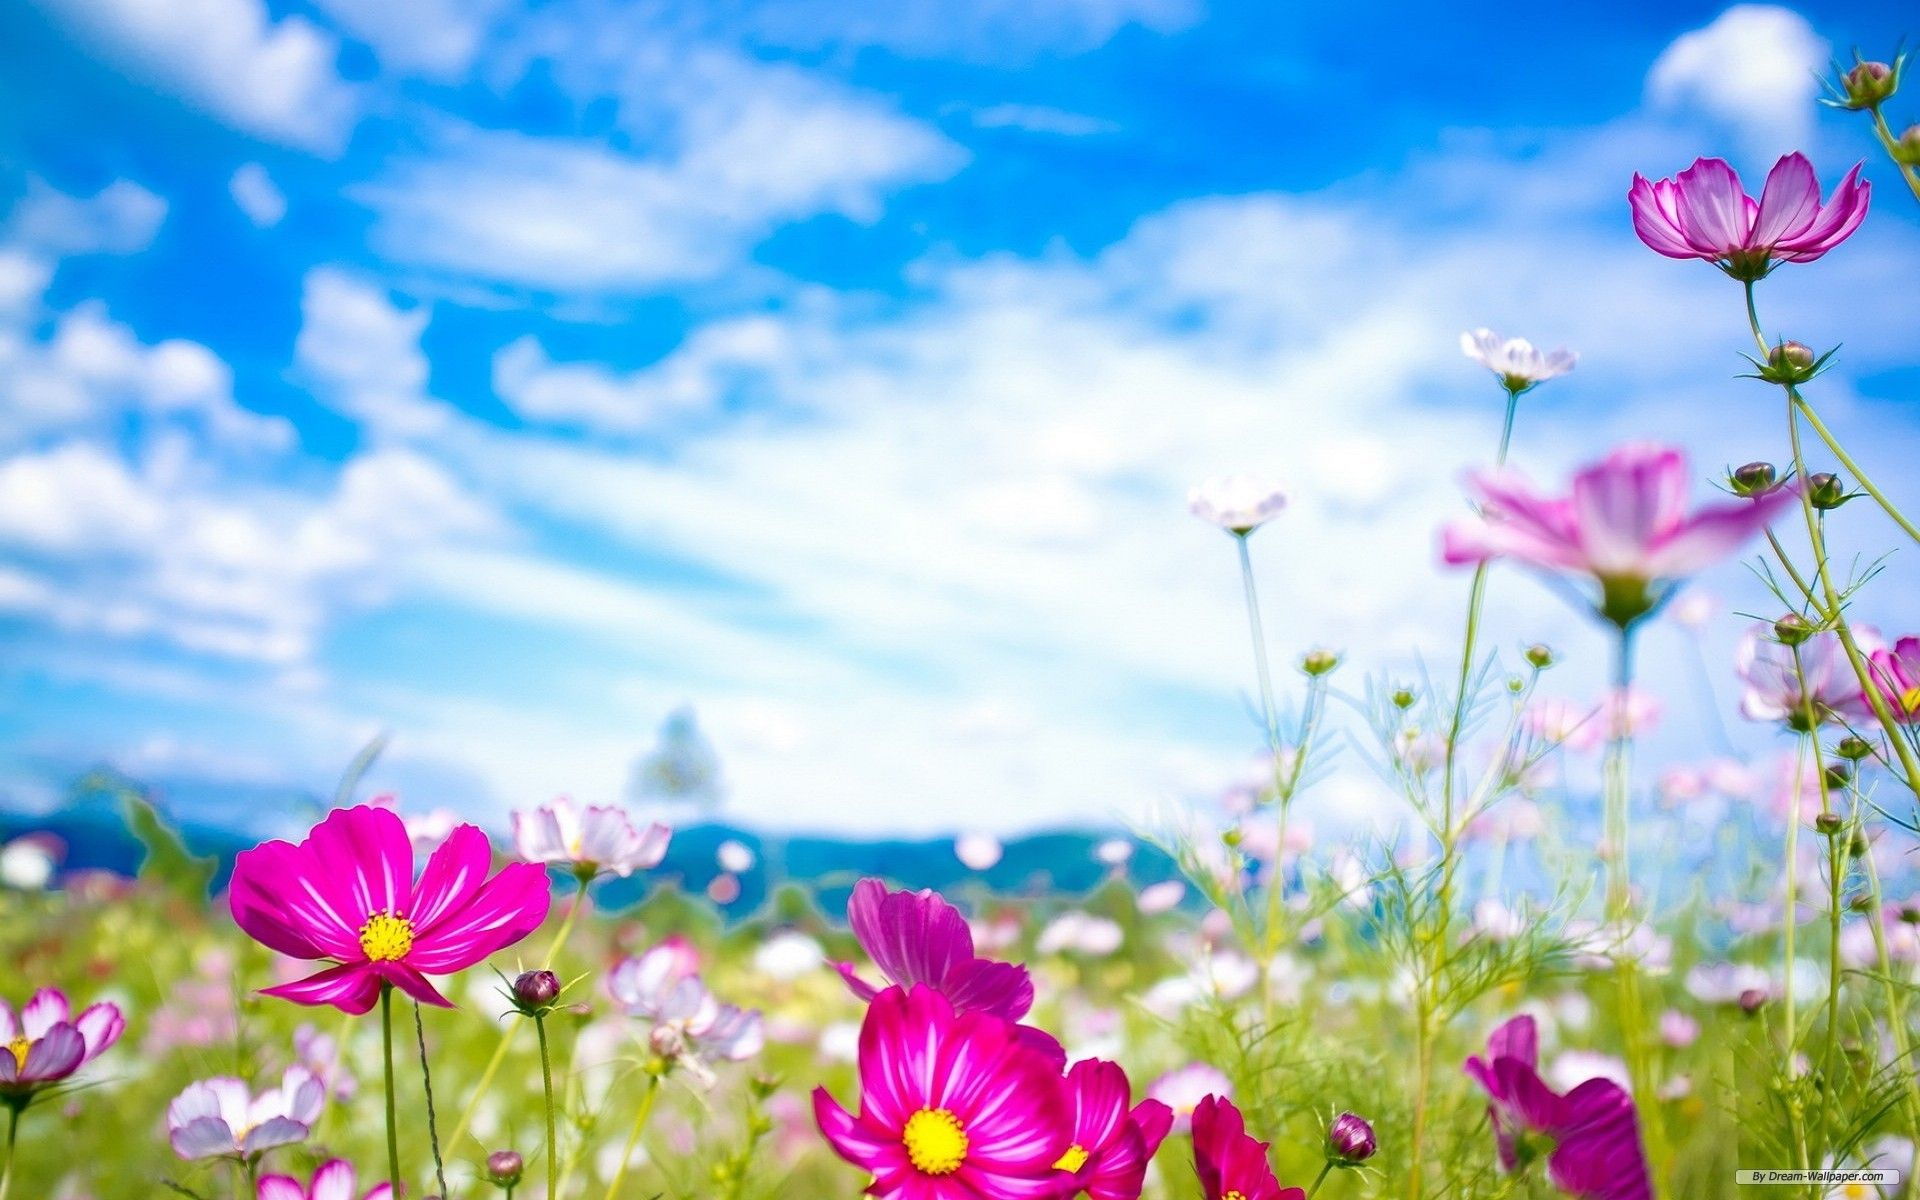 Spring flowers wallpapers natures wallpapers pinterest spring spring flowers wallpapers mightylinksfo Gallery